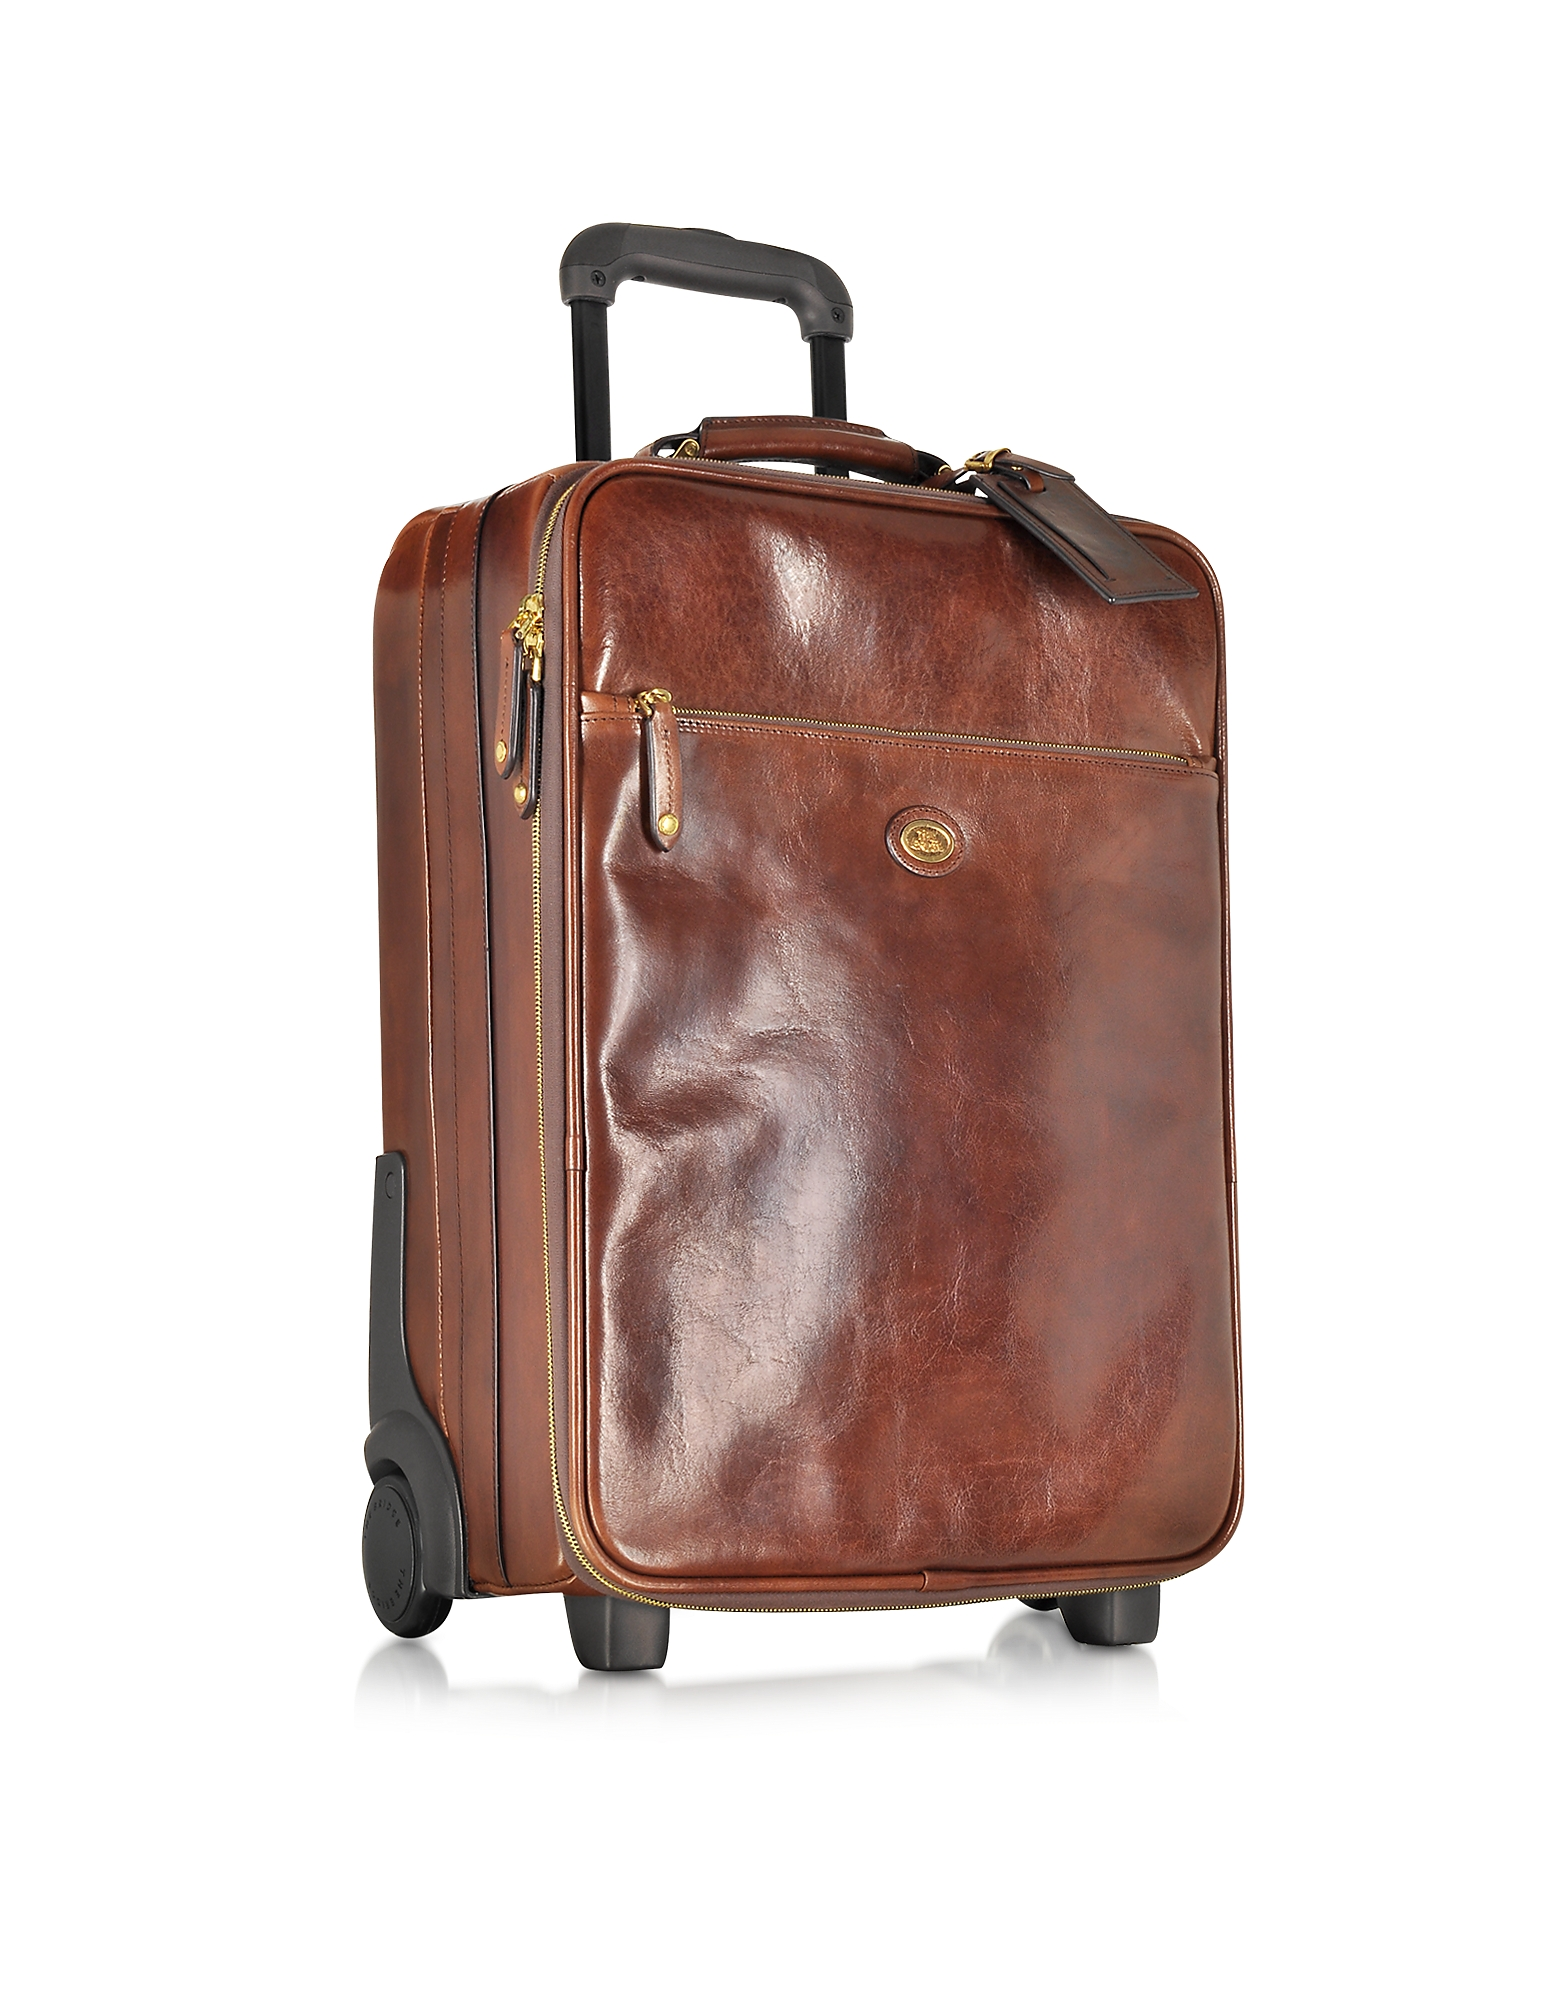 The Bridge Travel Bags, Story Viaggio Marrone Leather Trolley